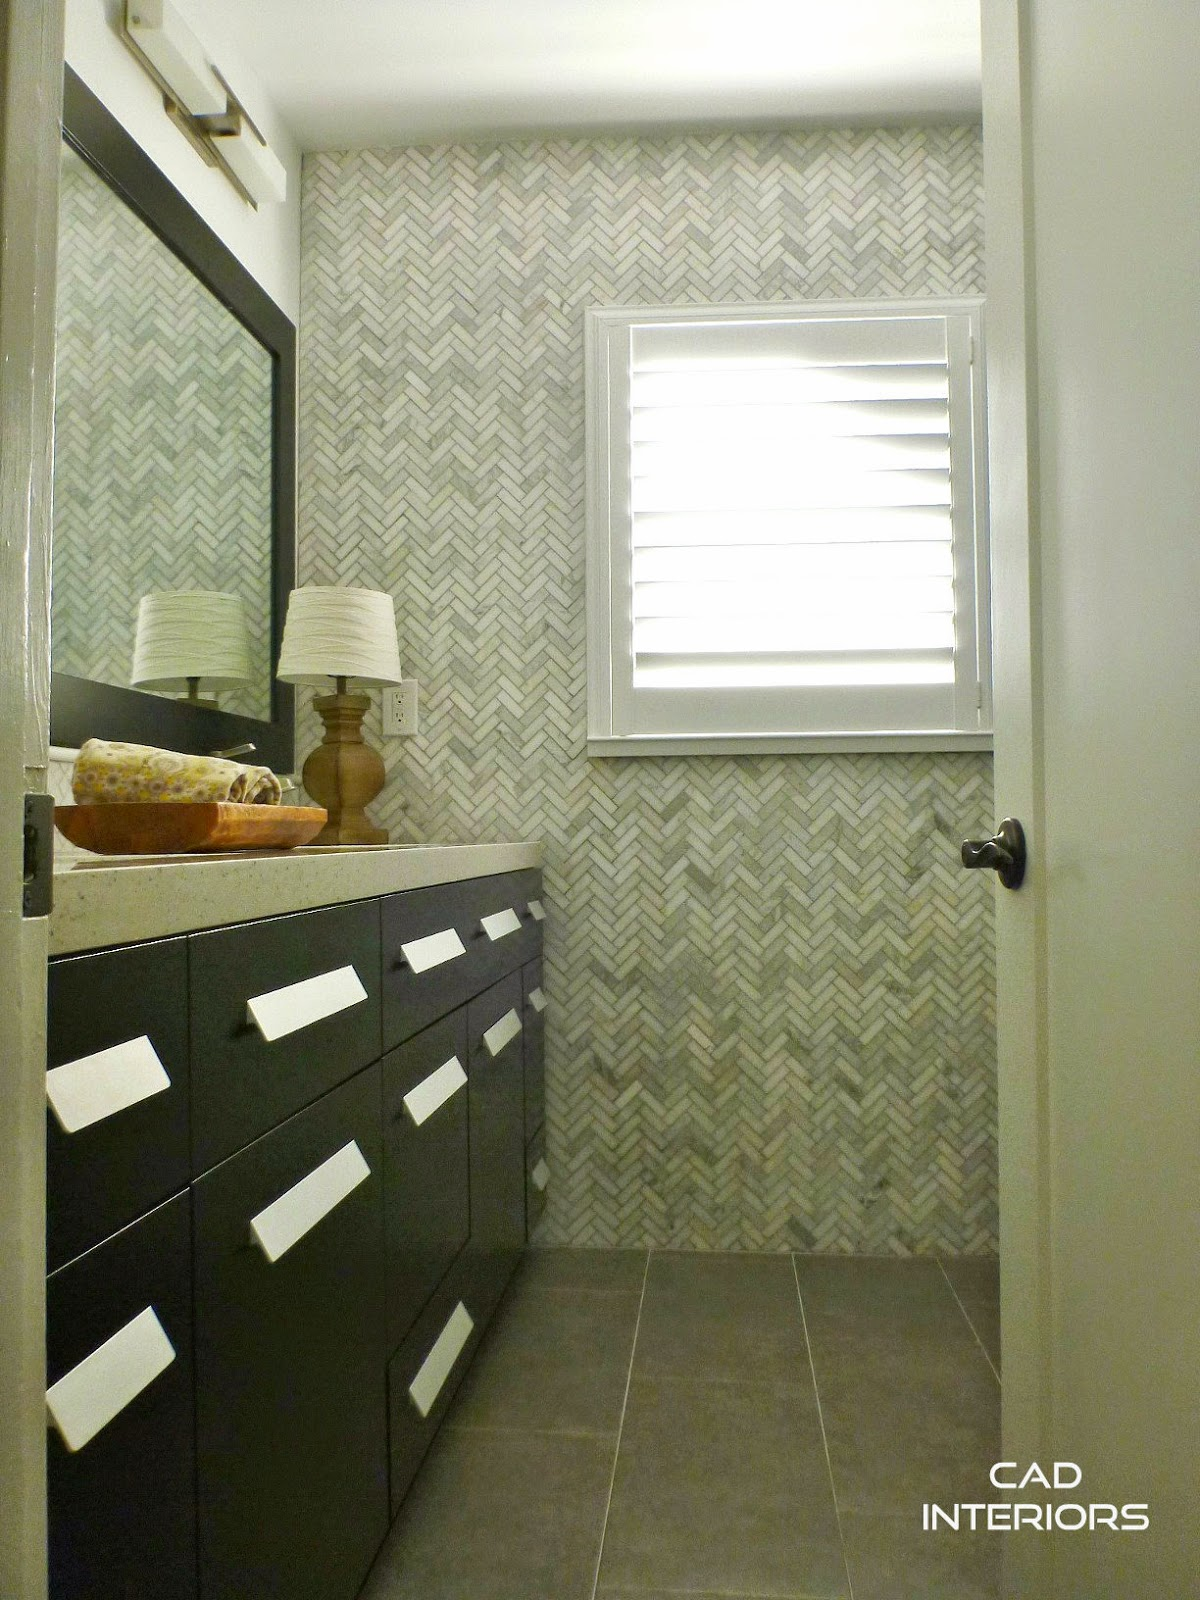 Vintage classic modern bathroom design renovation interior design transitional